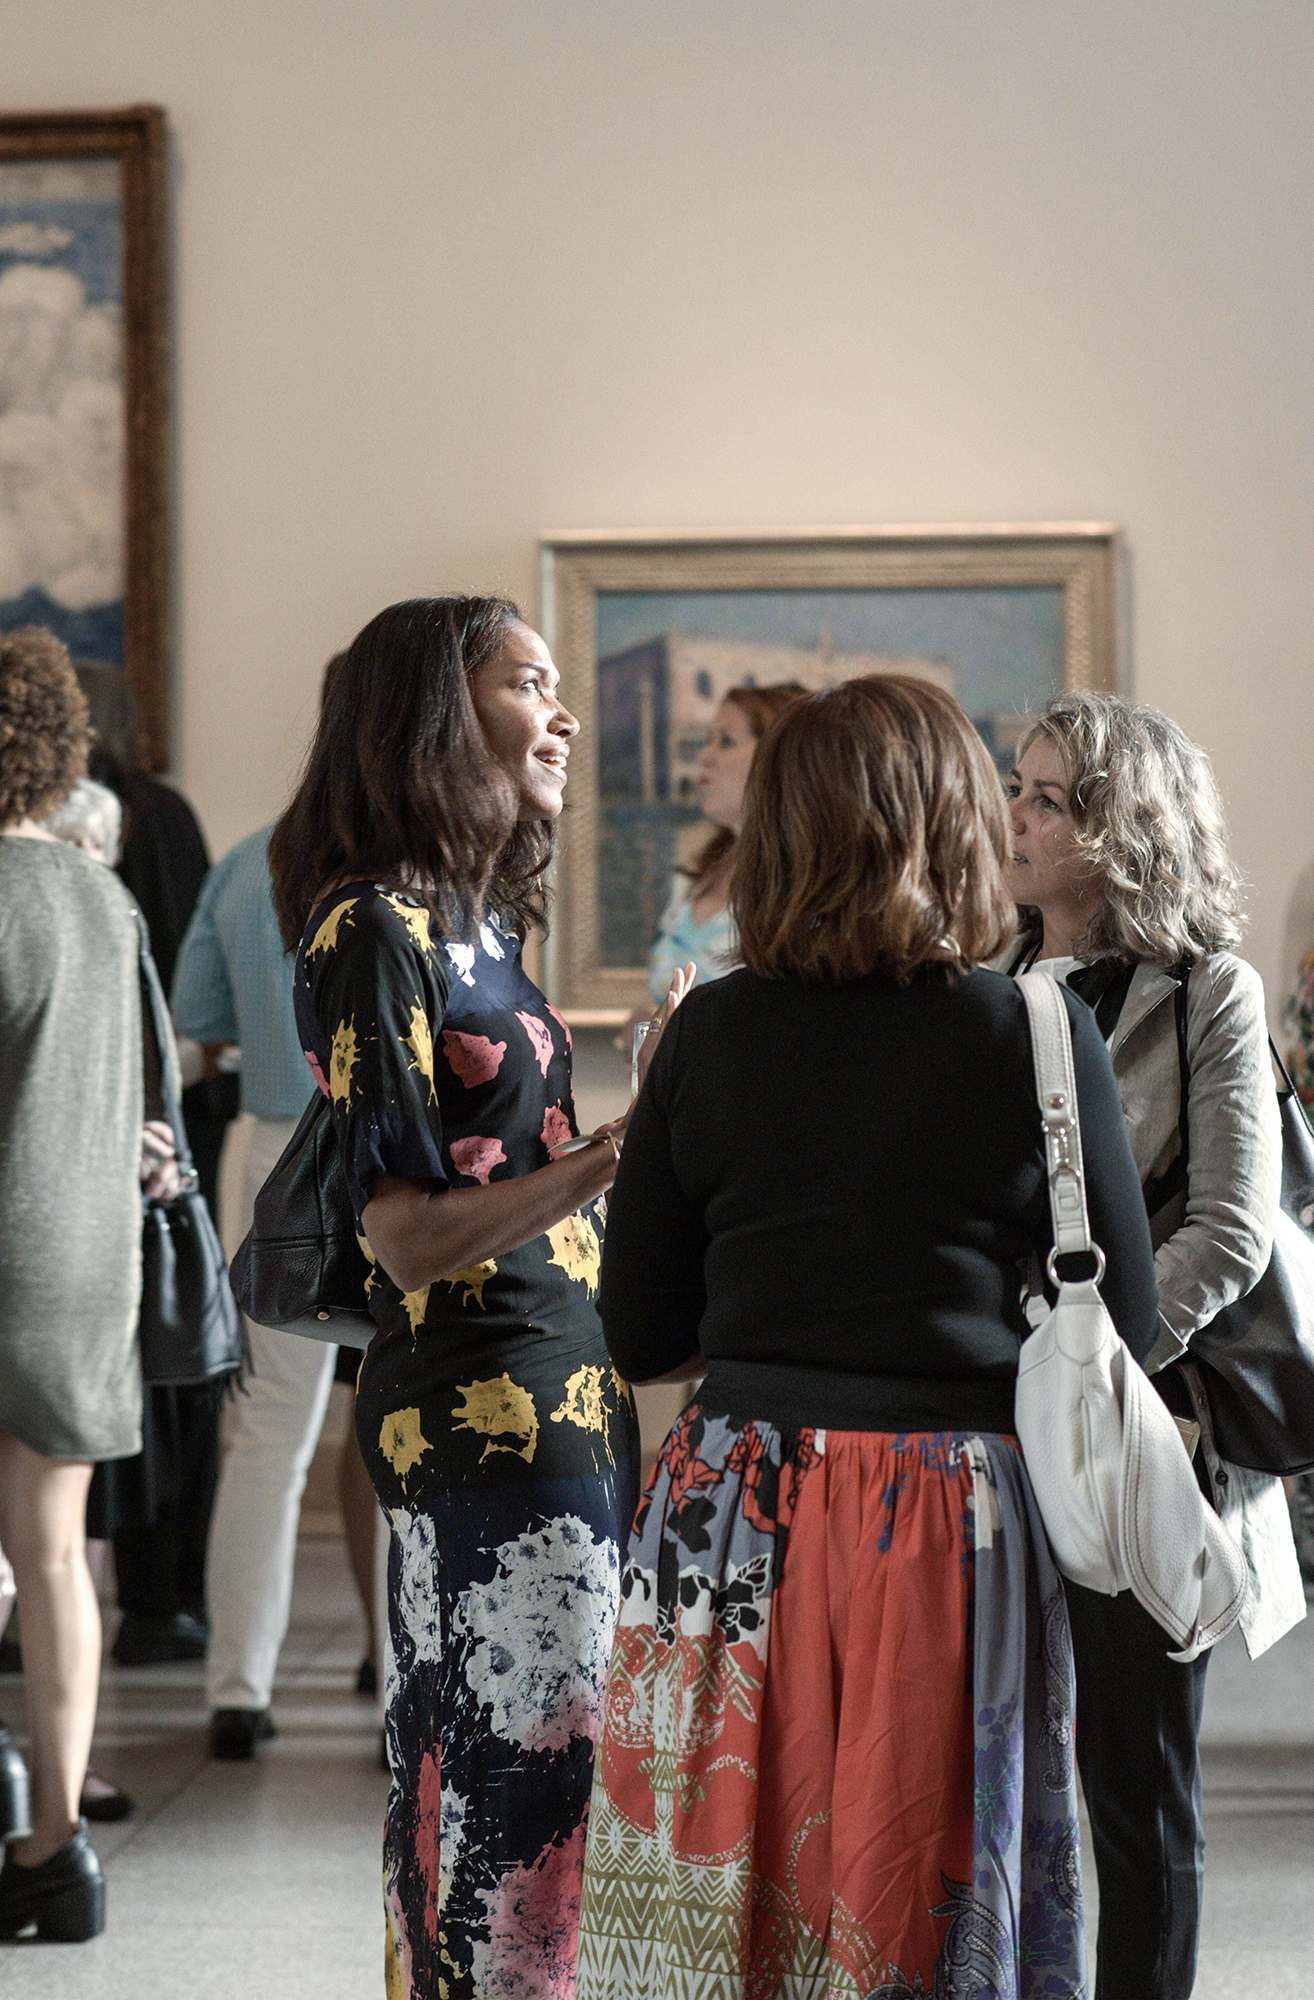 Guests of the event;Photograph ©Malcolm D. Anderson